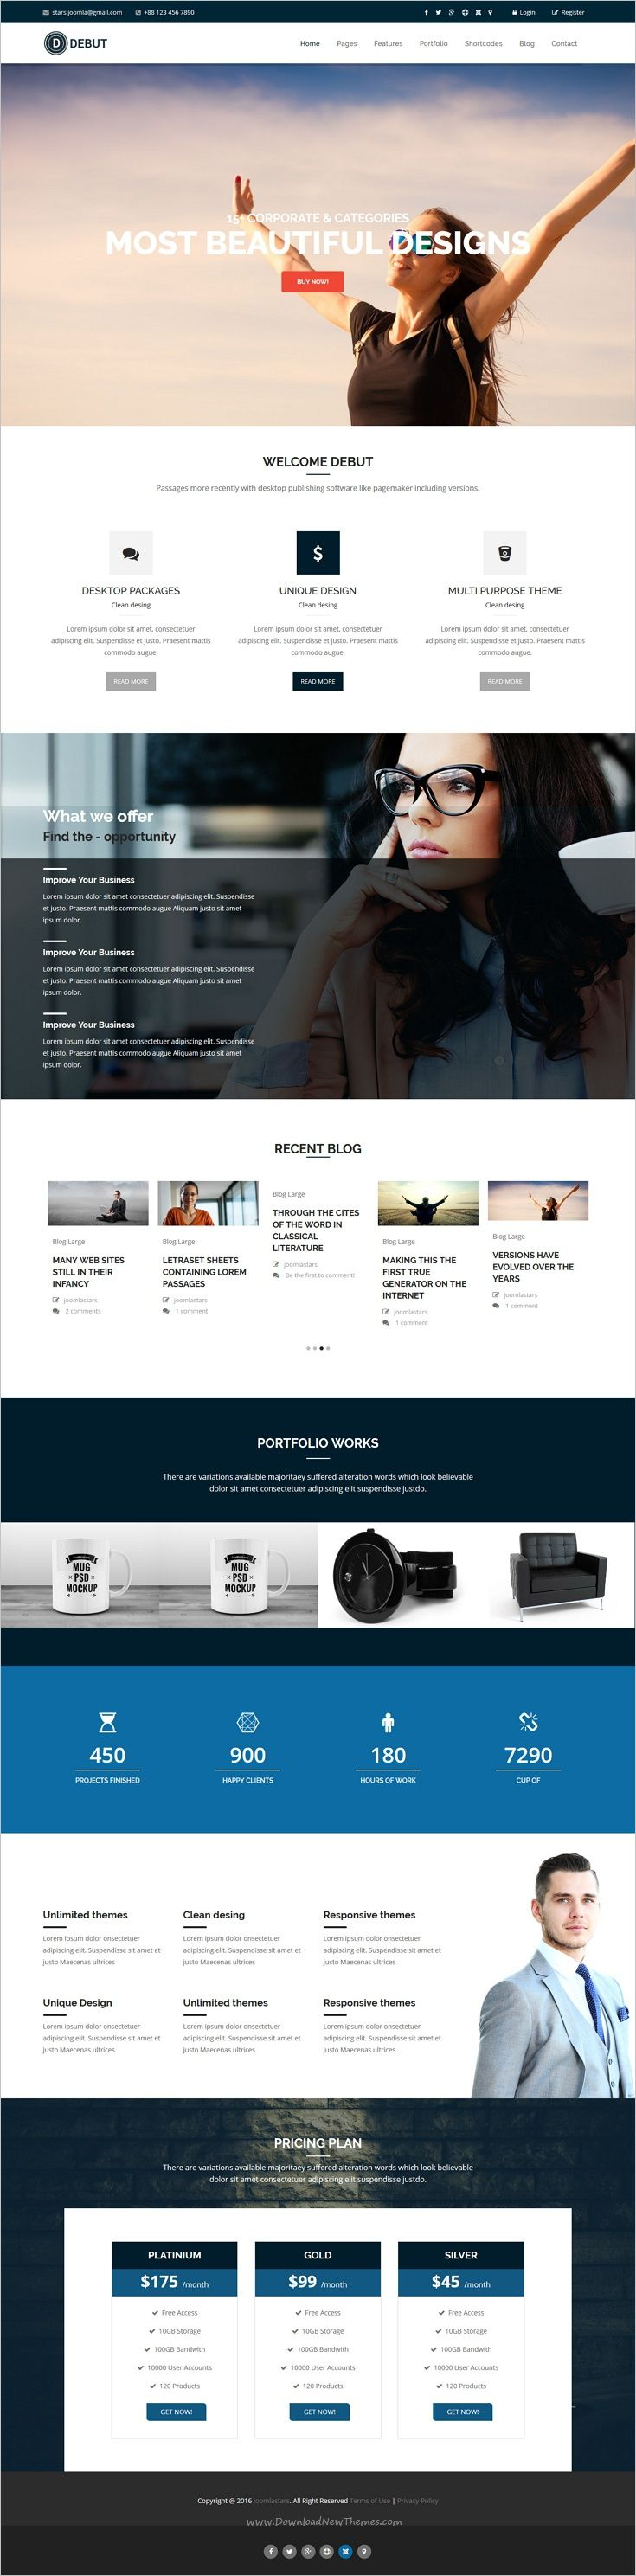 Debut is a modern and professional responsive #Joomla template for company, #business, blog and #portfolio website with 11+ multipurpose homepage layouts download now➩ https://themeforest.net/item/debut-the-multipurpose-responsive-joomla-theme/19077114?ref=Datasata